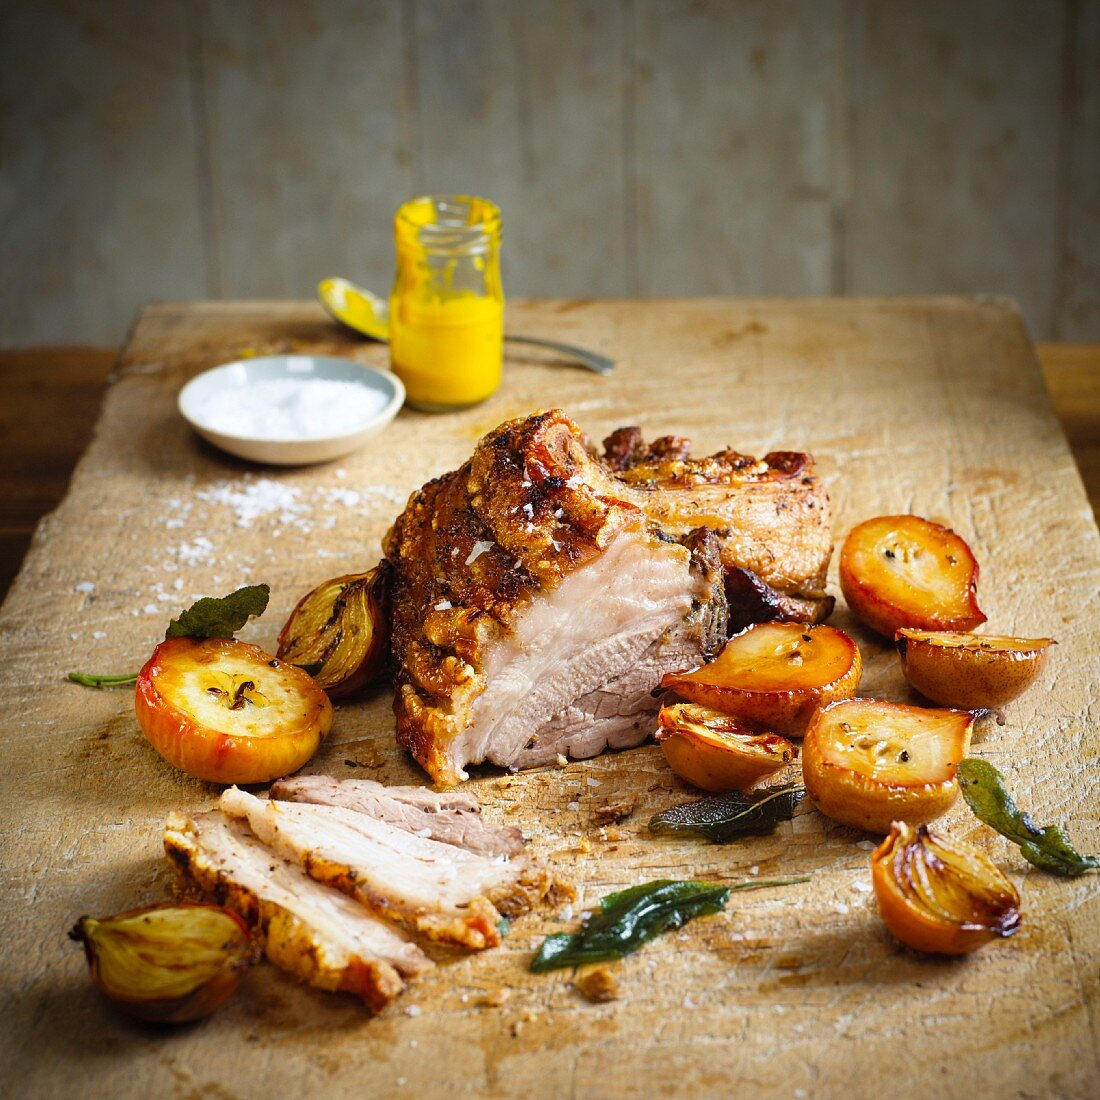 Crispy roasted pork belly with pears (partly sliced)